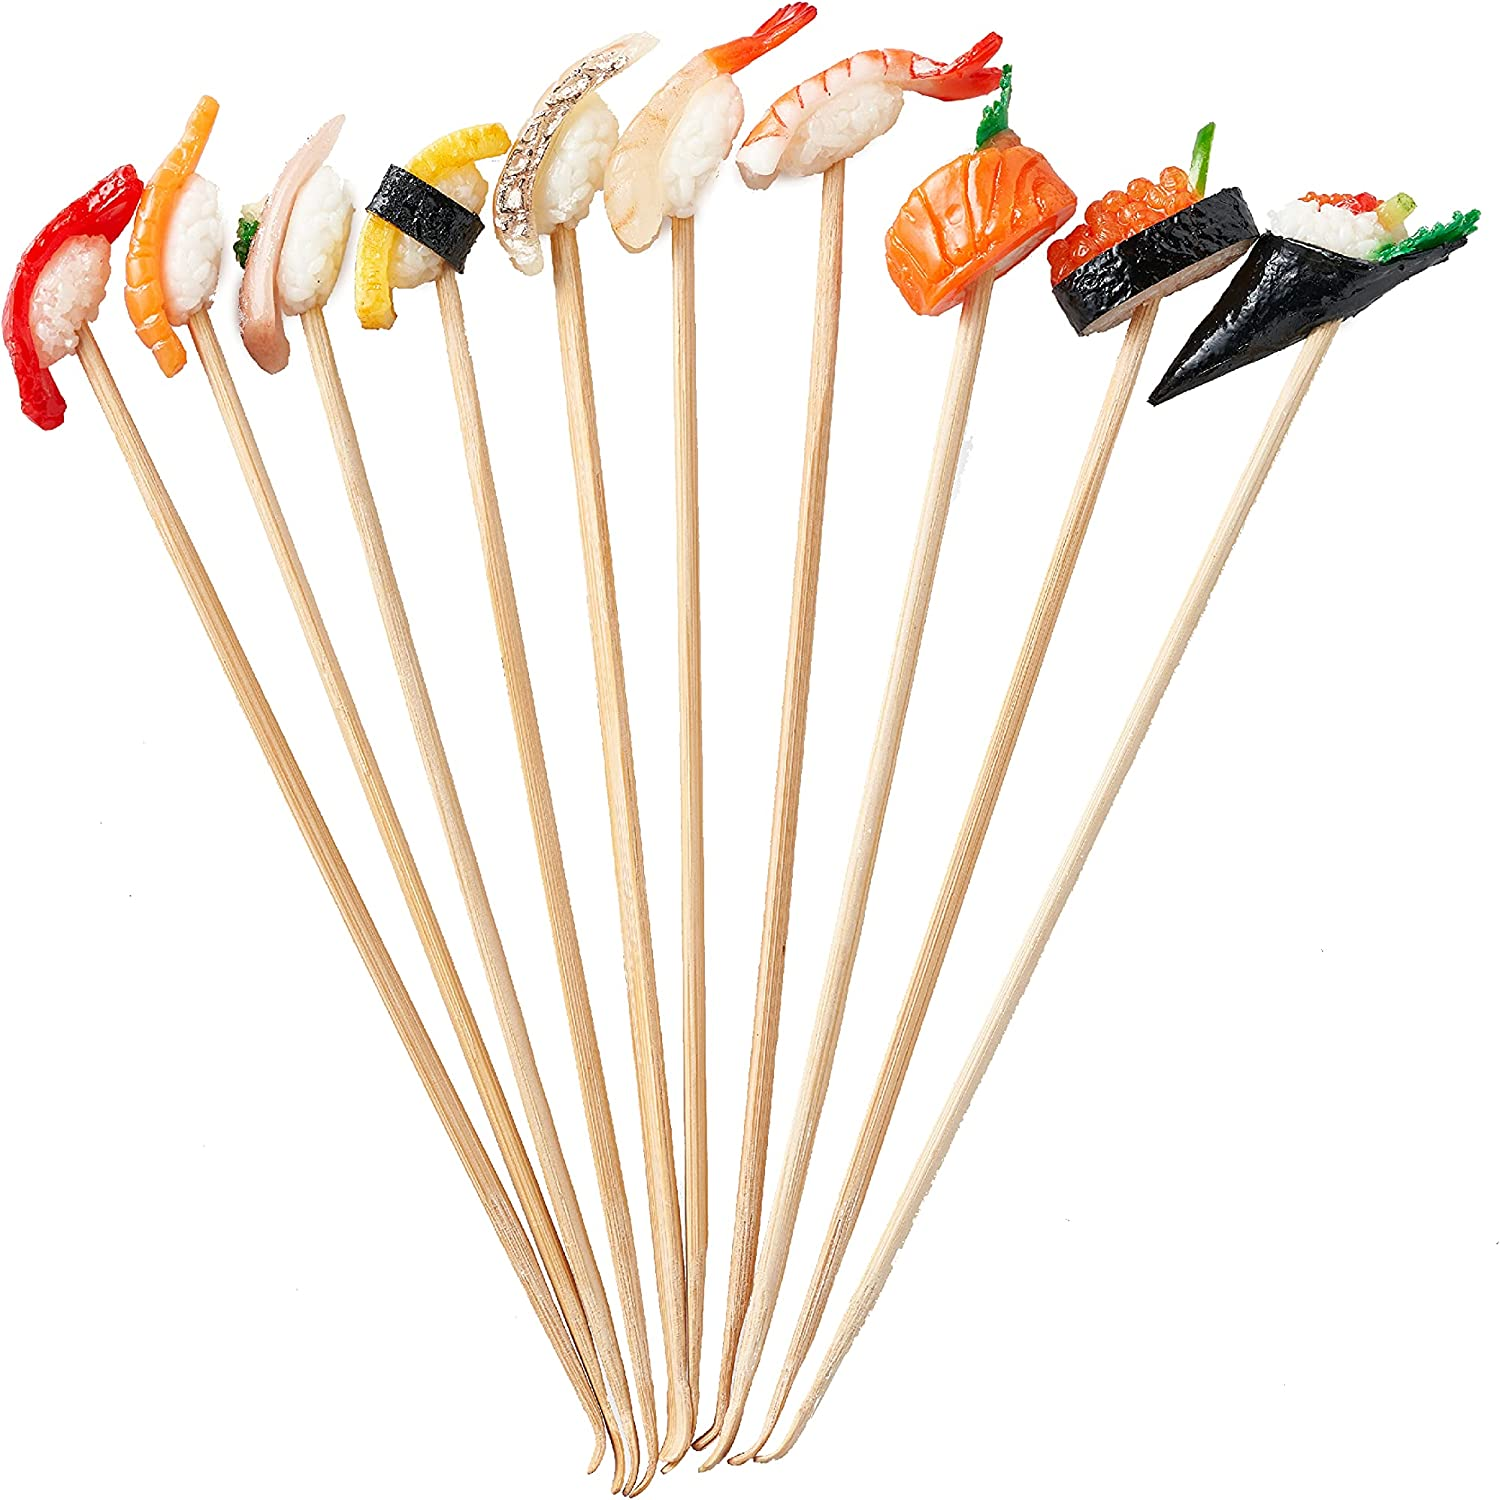 Sushi Ear Pick (10 Set) Miniature Food Replica Attached to mimikaki. Food Replicas Made in Japan. Surprisingly Realistic. Enjoy Cleaning Your Ears with These Unique Ear Picks